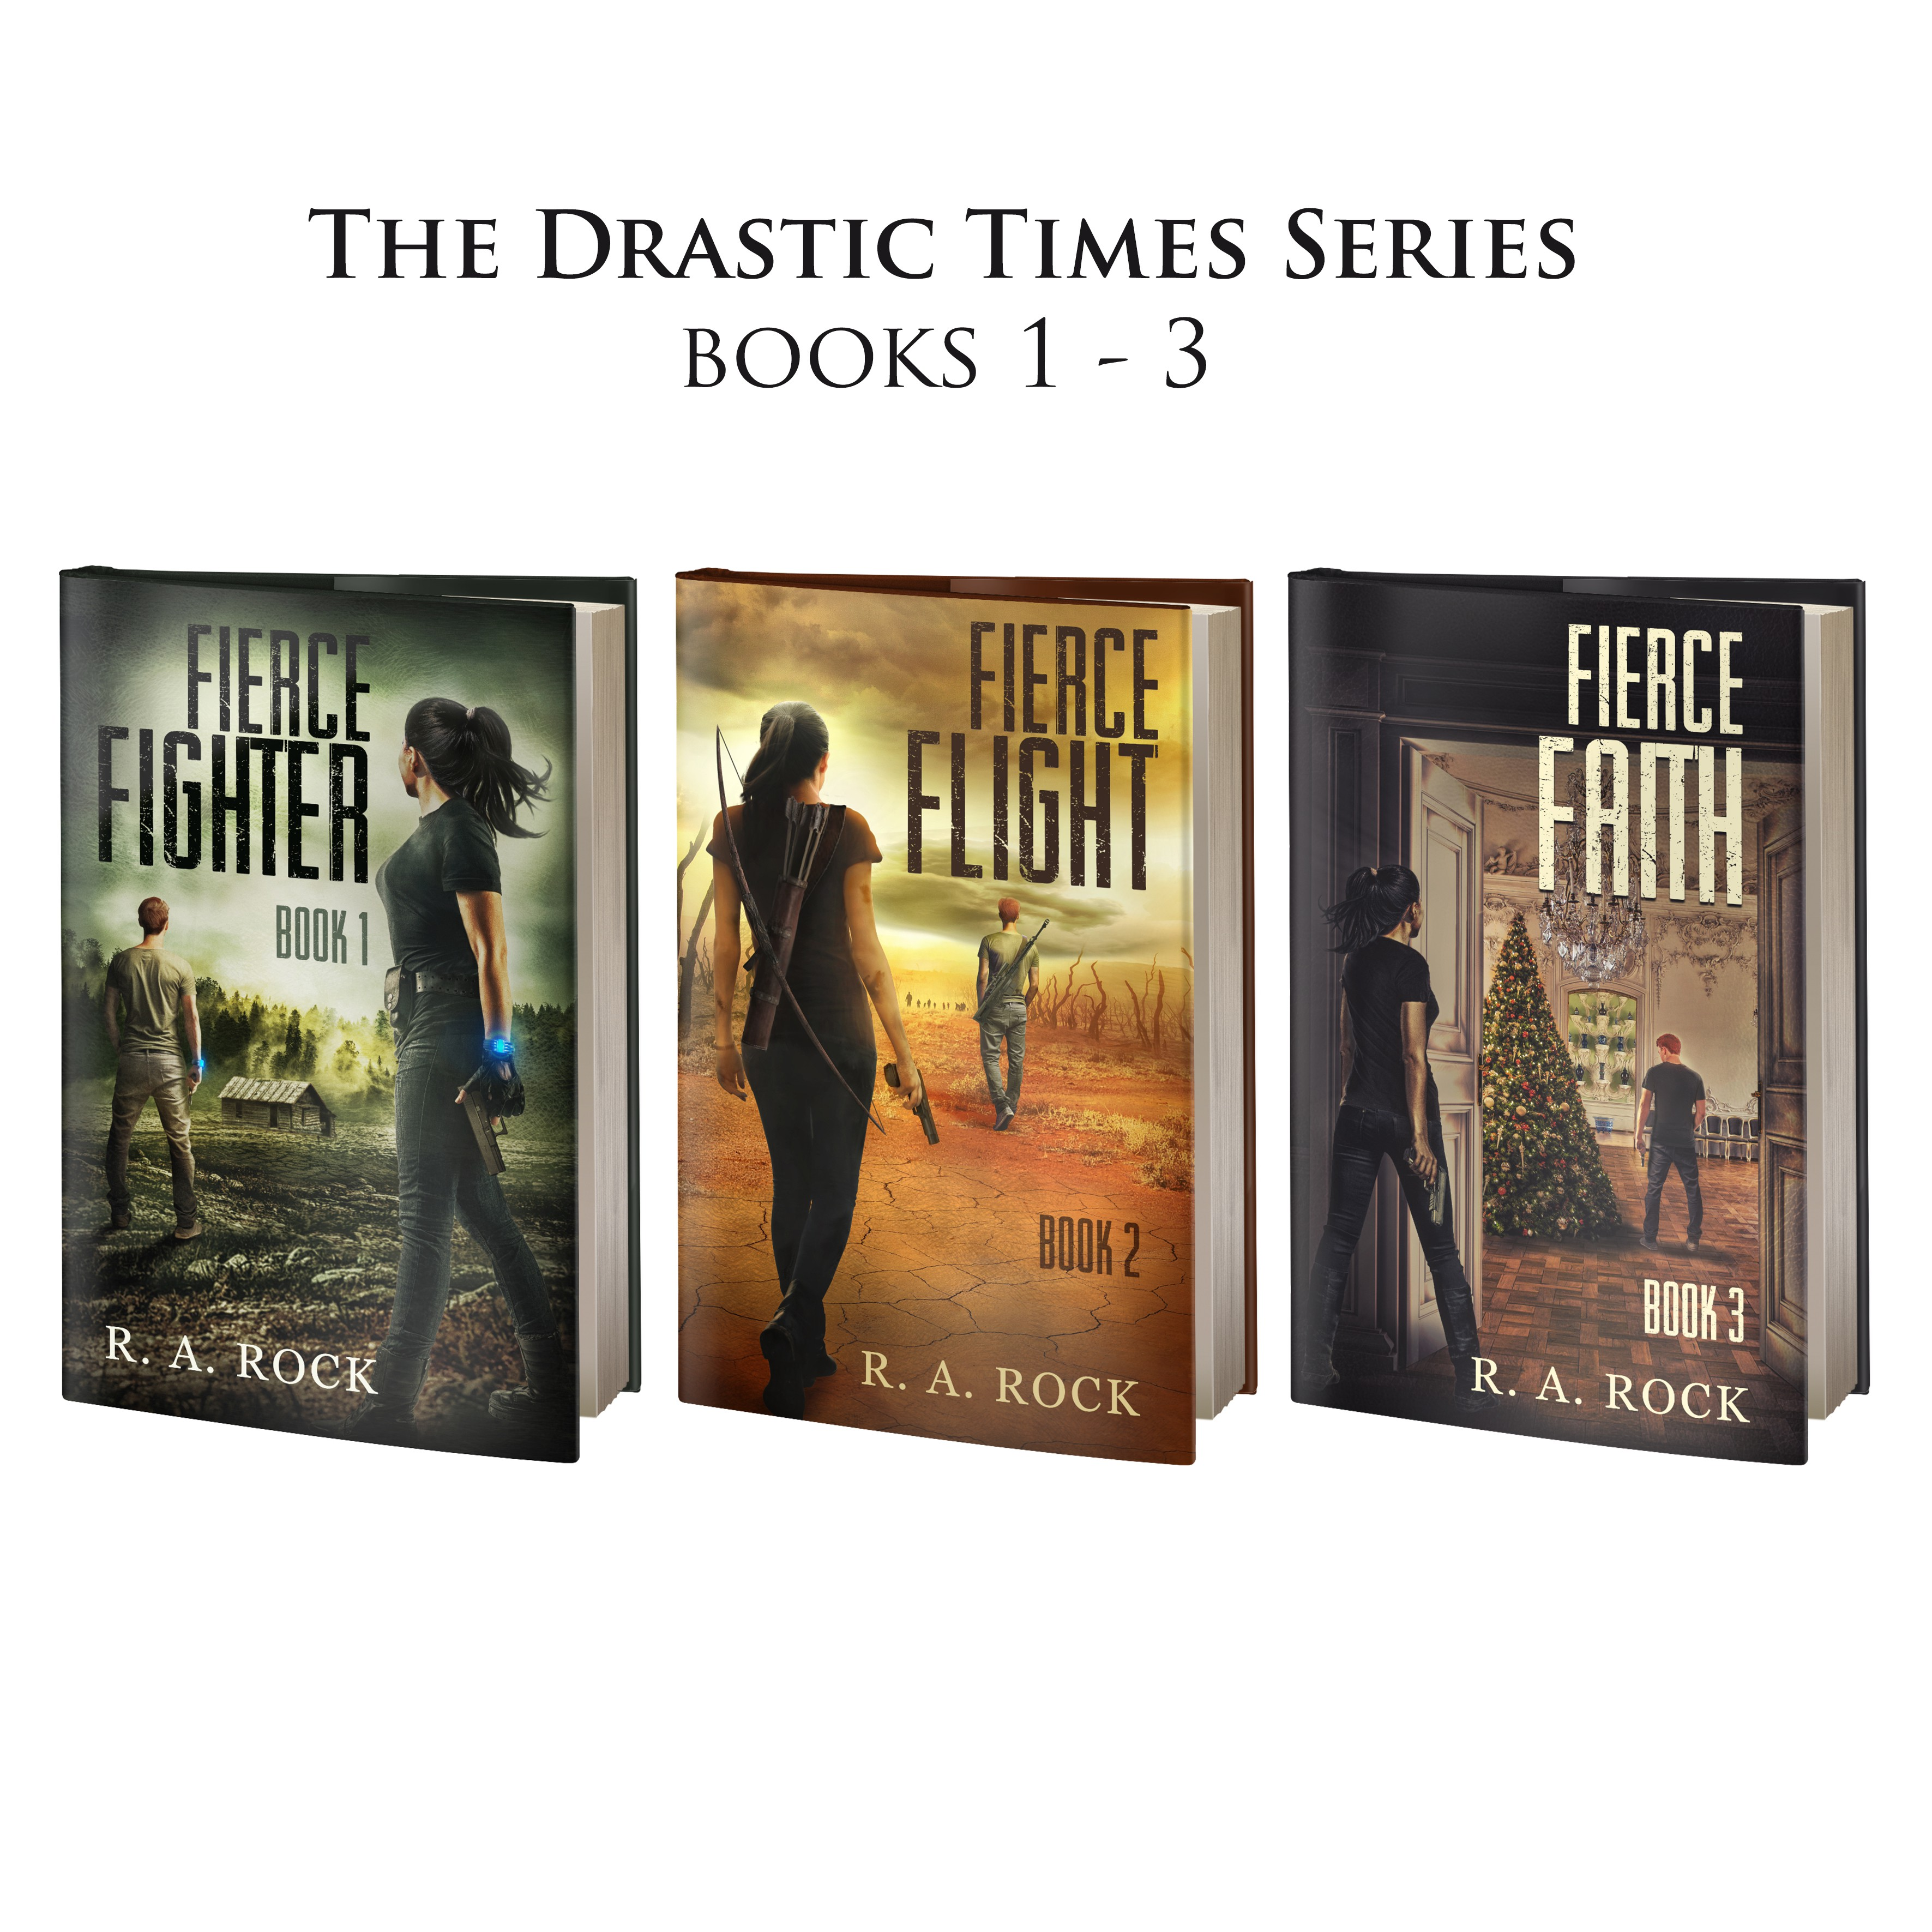 The Drastic Times Series books 1 - 3